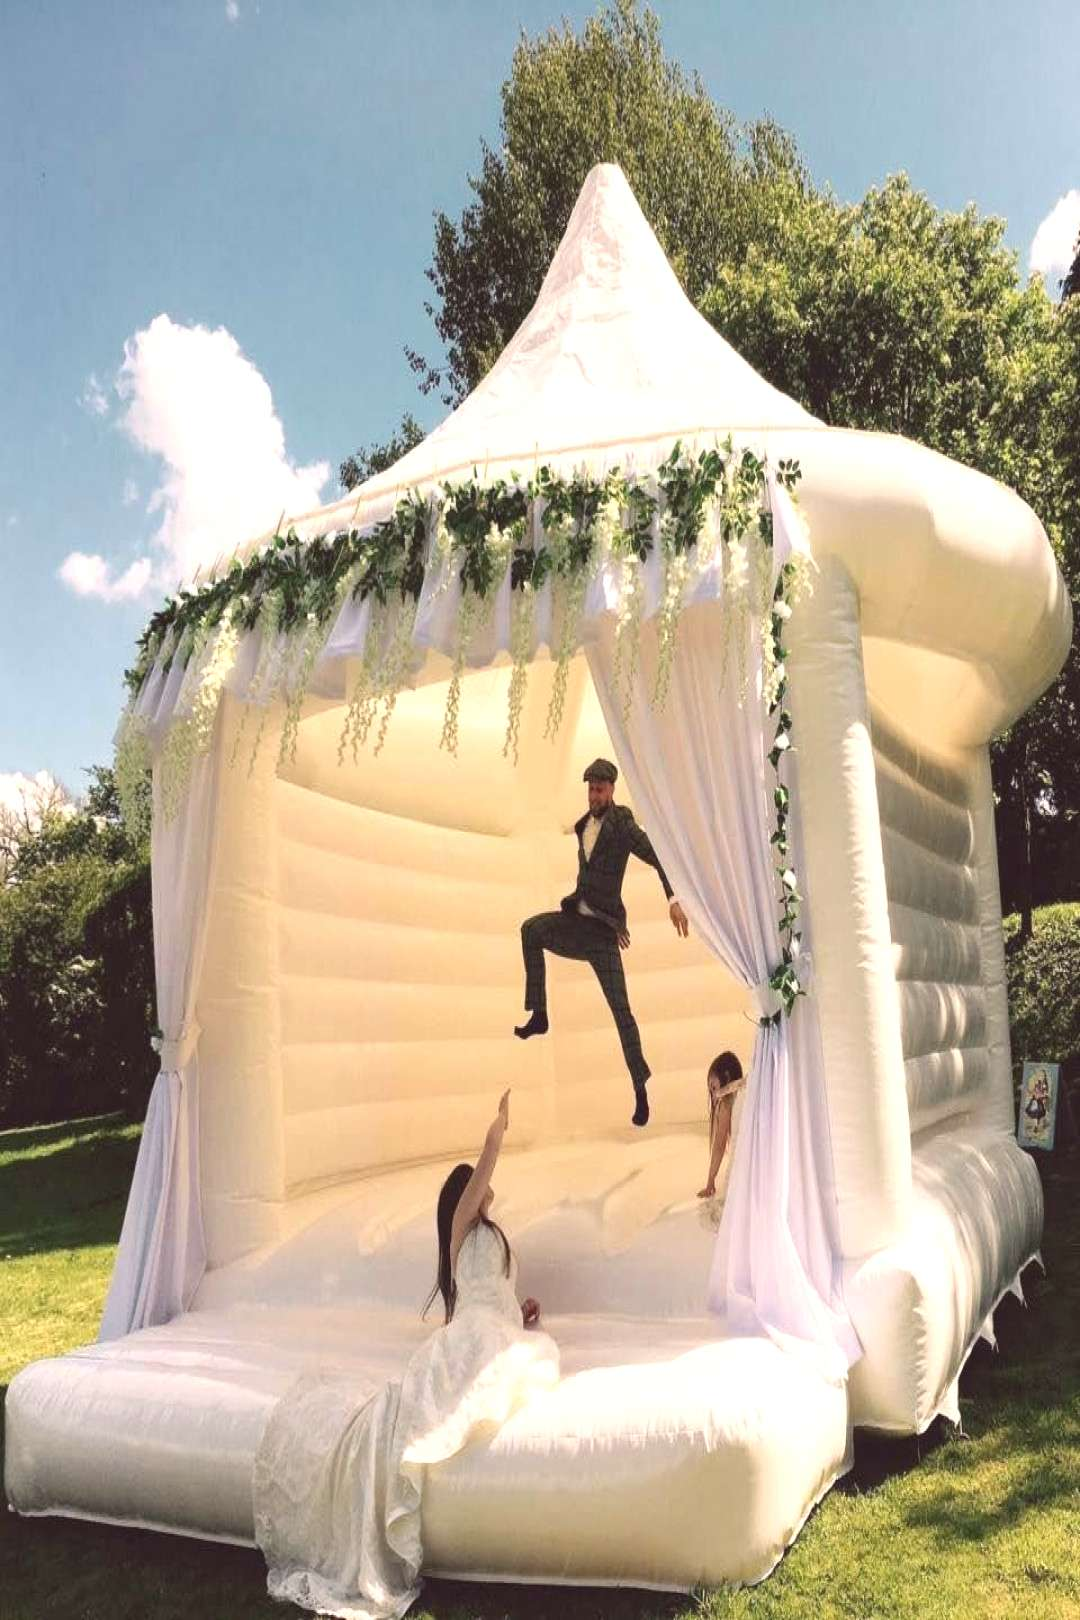 Wedding Bouncy Castles Are A Thing Now, So Time To Get Married - La mejor imagen sobre  diy face ma